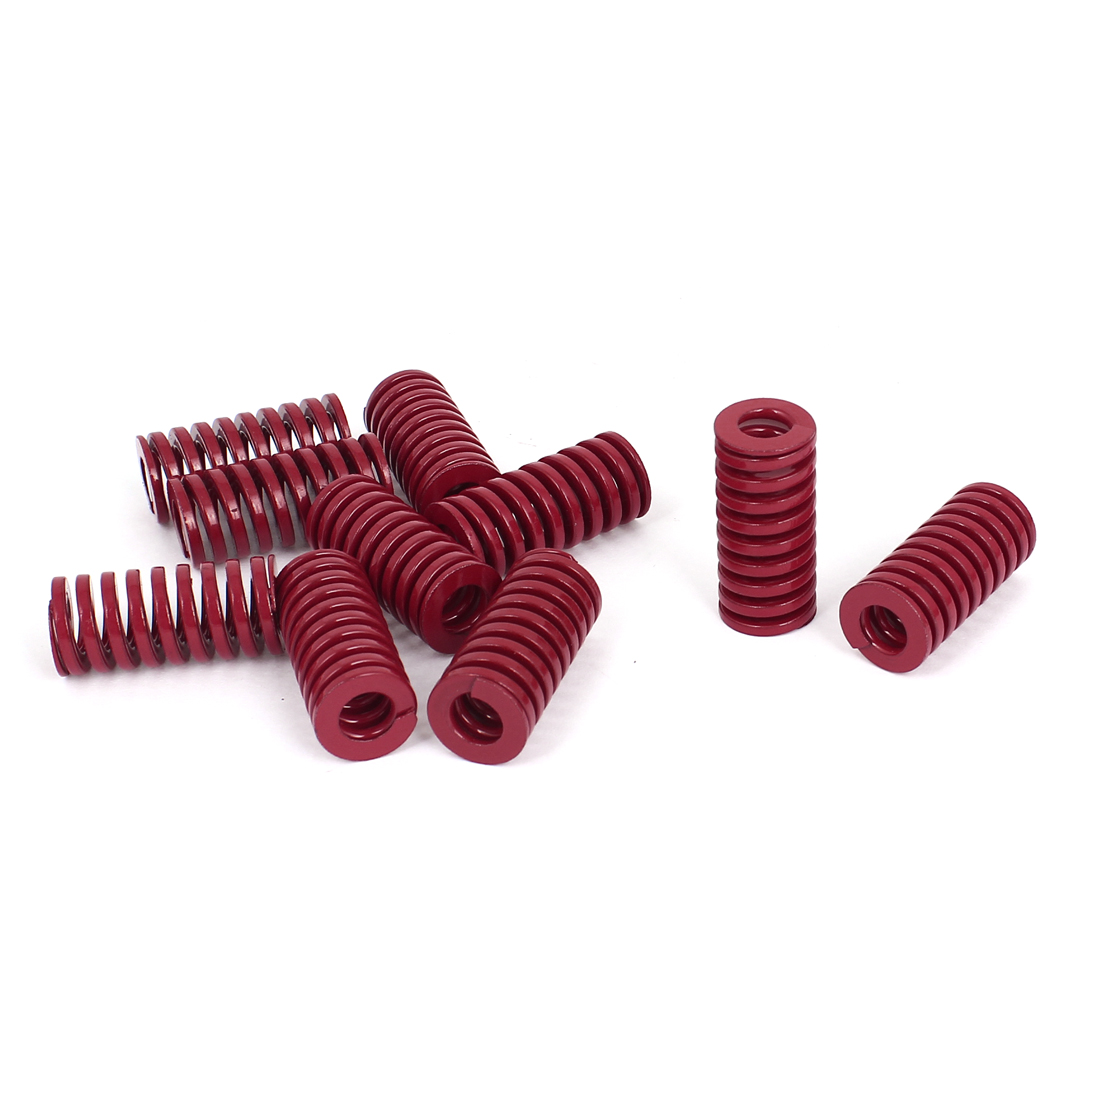 18mm OD 40mm Long Medium Load Stamping Compression Mold Die Spring Red 10pcs